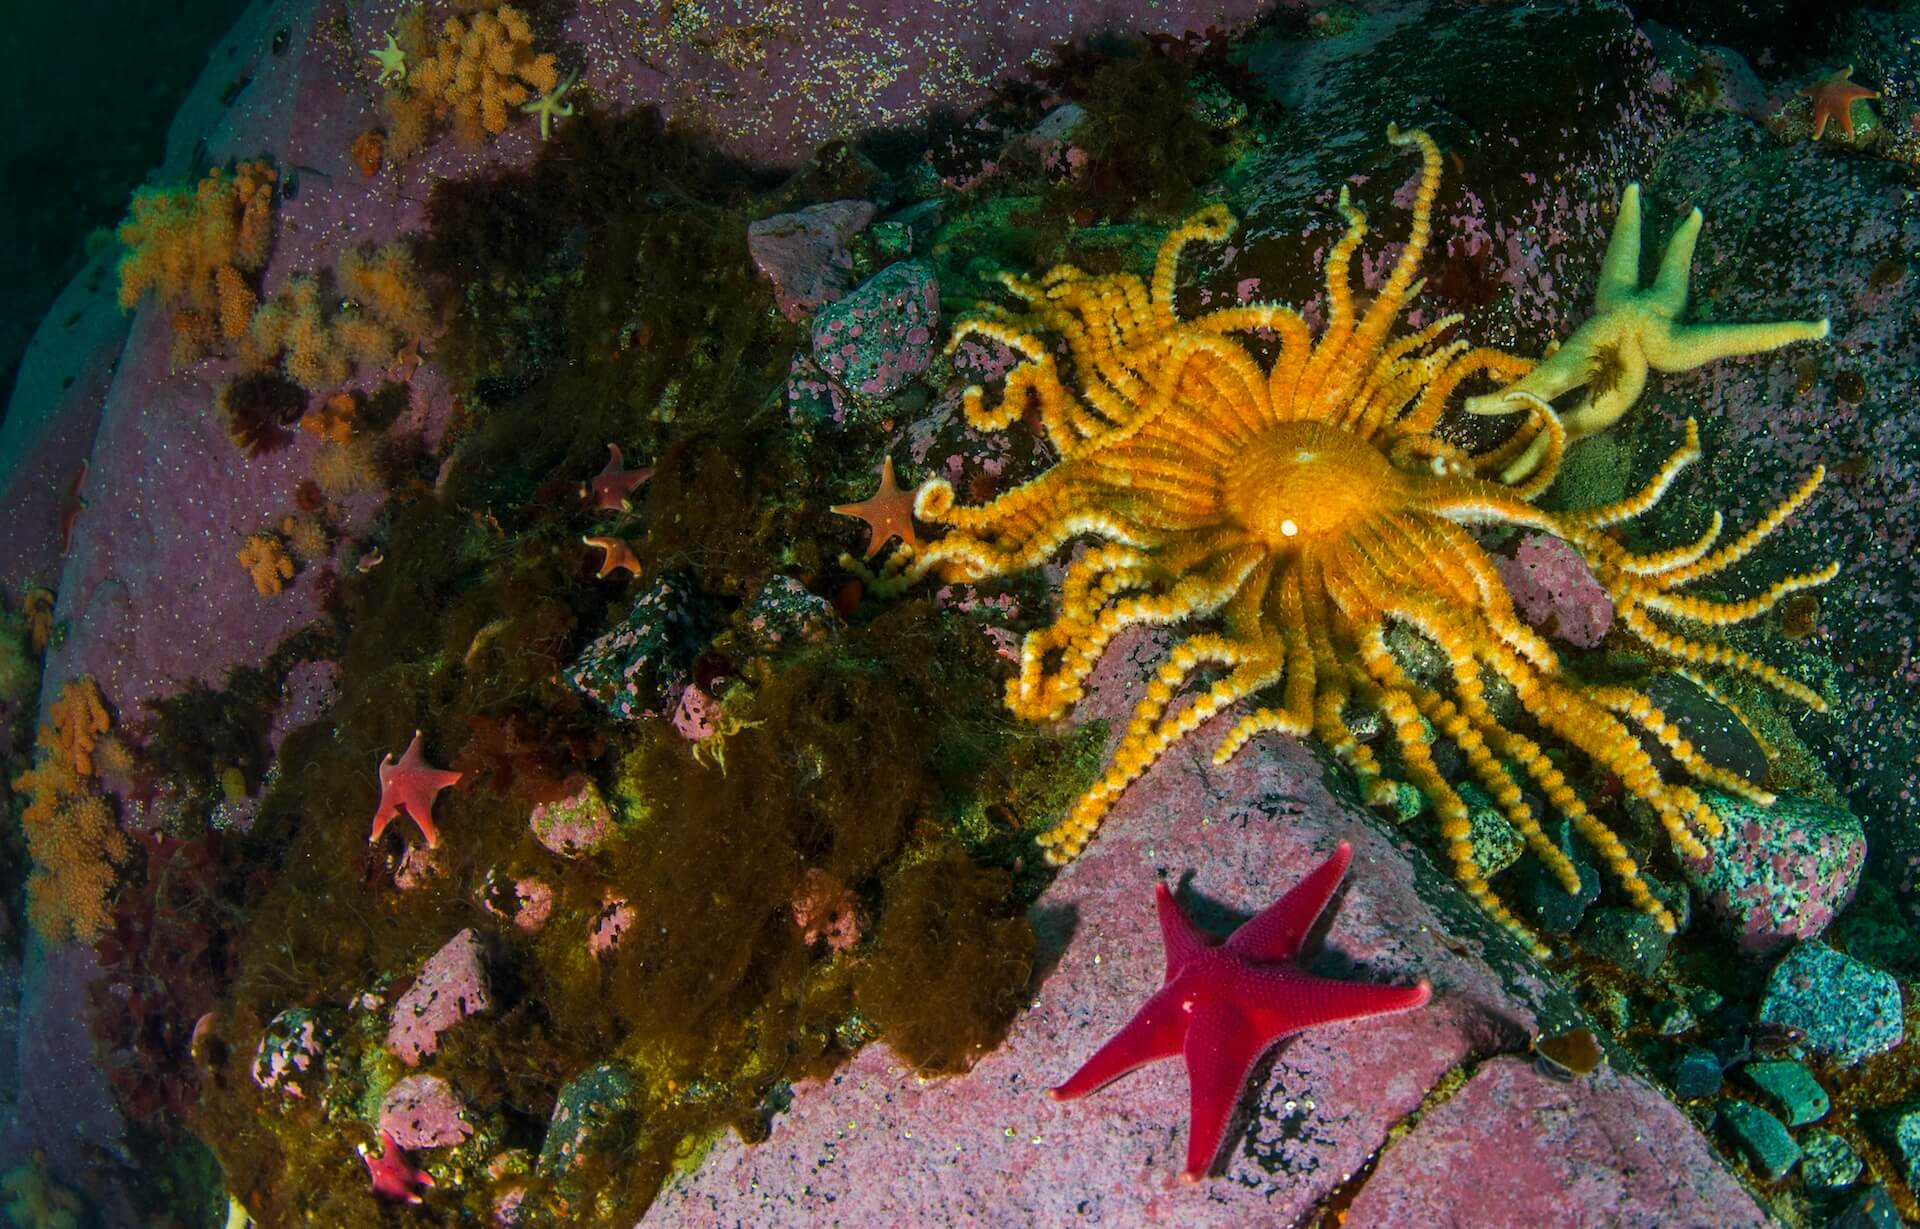 There are over 35 species of starfish in the oceans around Antarctica. The most striking of these, is the Labidiaster annulatus, which spans over two feet. Unlike most other sea stars that have five rays, the sunshine-yellow labidaster has over 50 spindly rays, which it uses to catch and consume small fish.